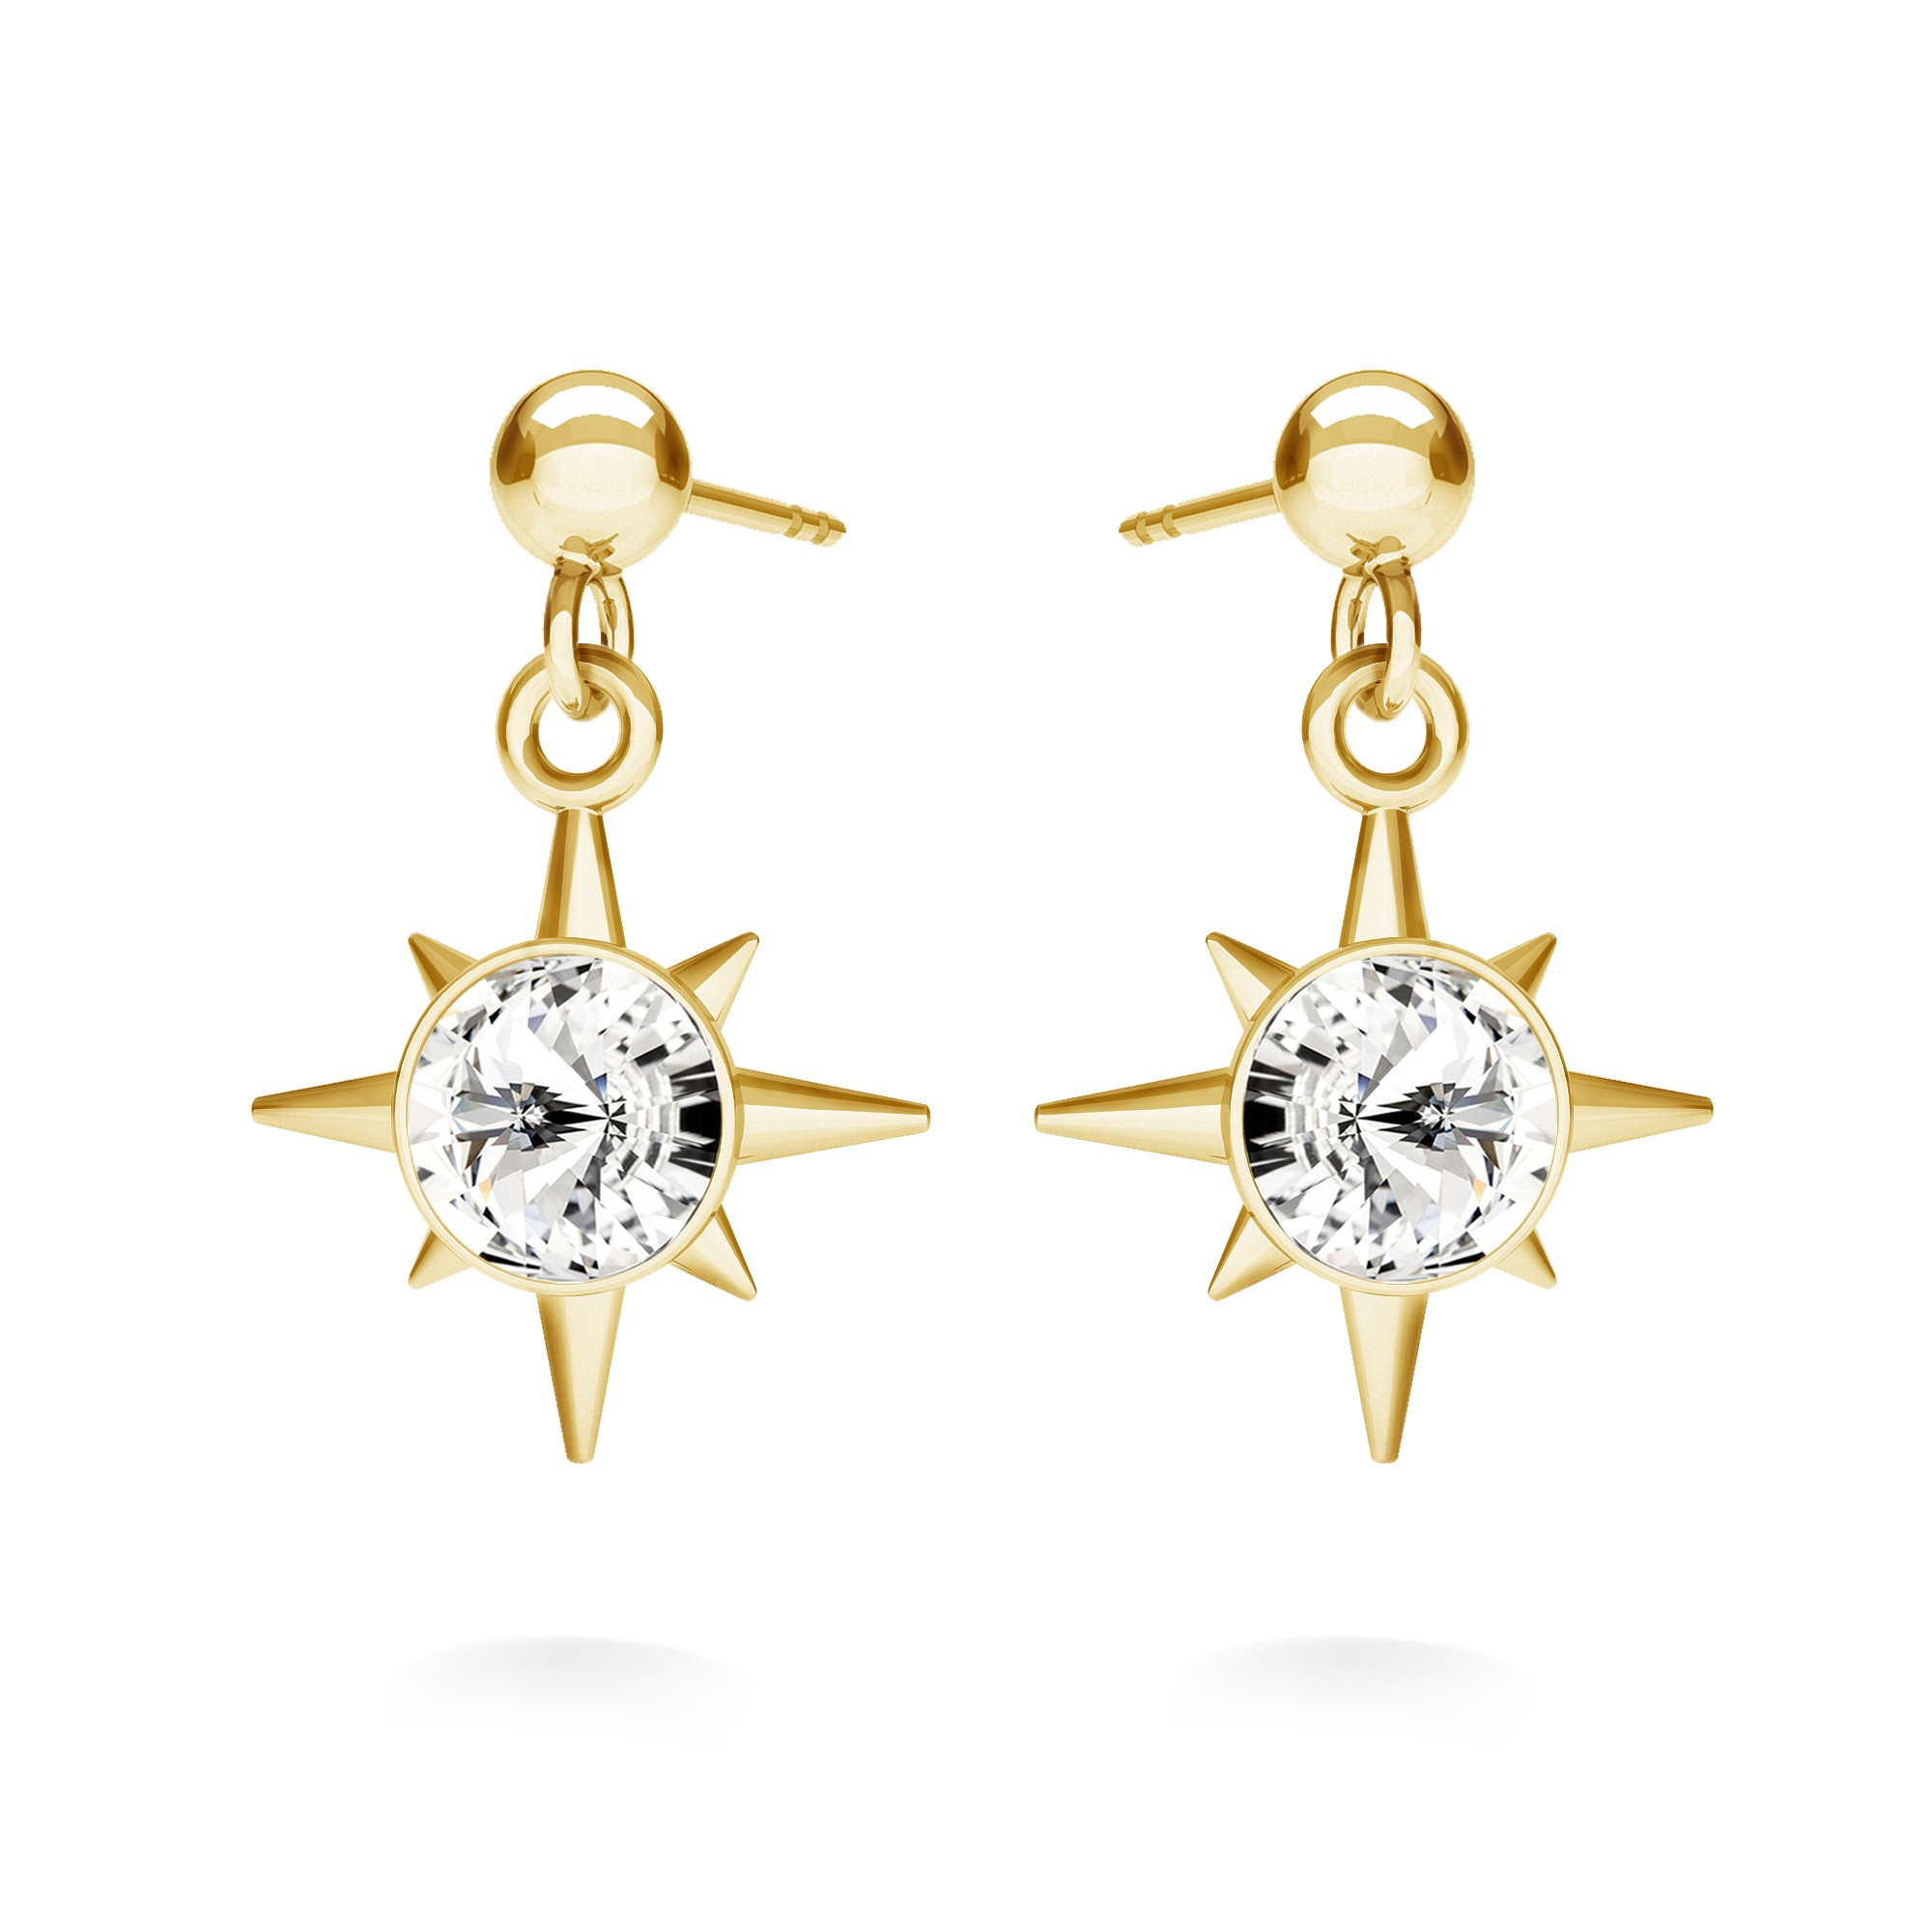 MON DÉFI earrings - star with crystal, sterling silver 925